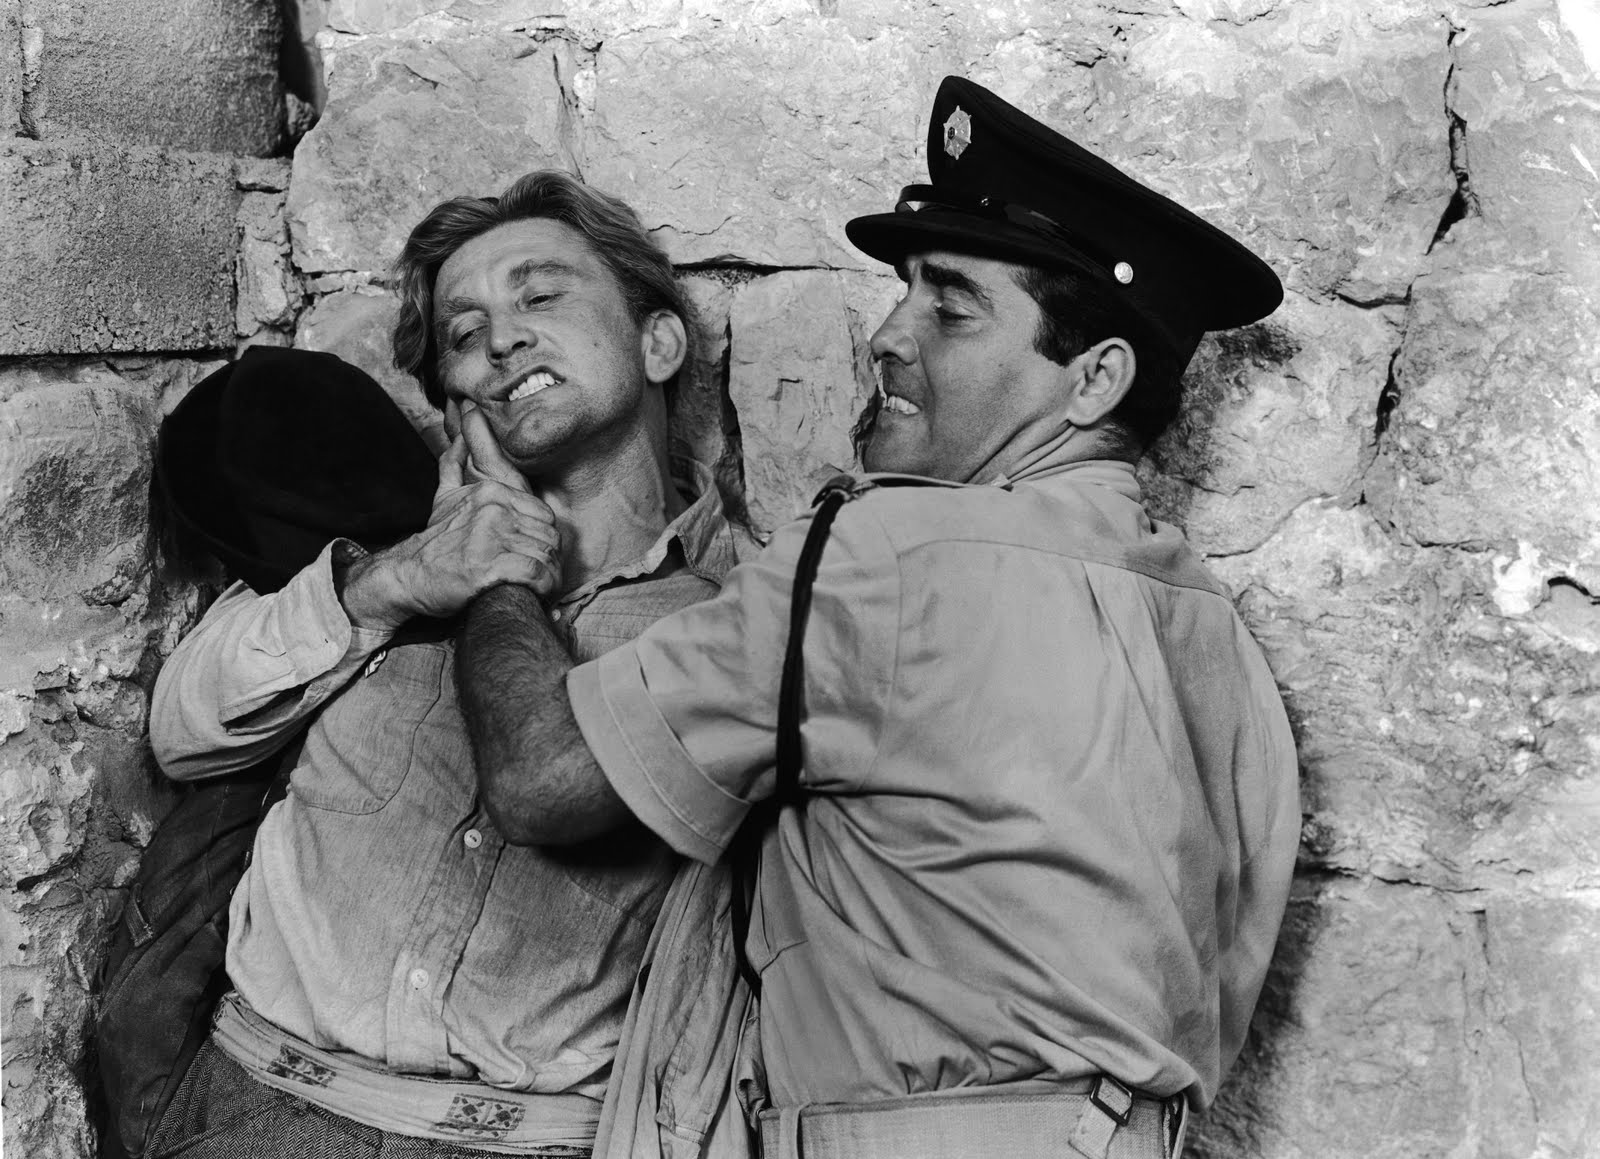 Hans (Kirk Douglas) fighting with an Israeli policeman (Richard Benedict).